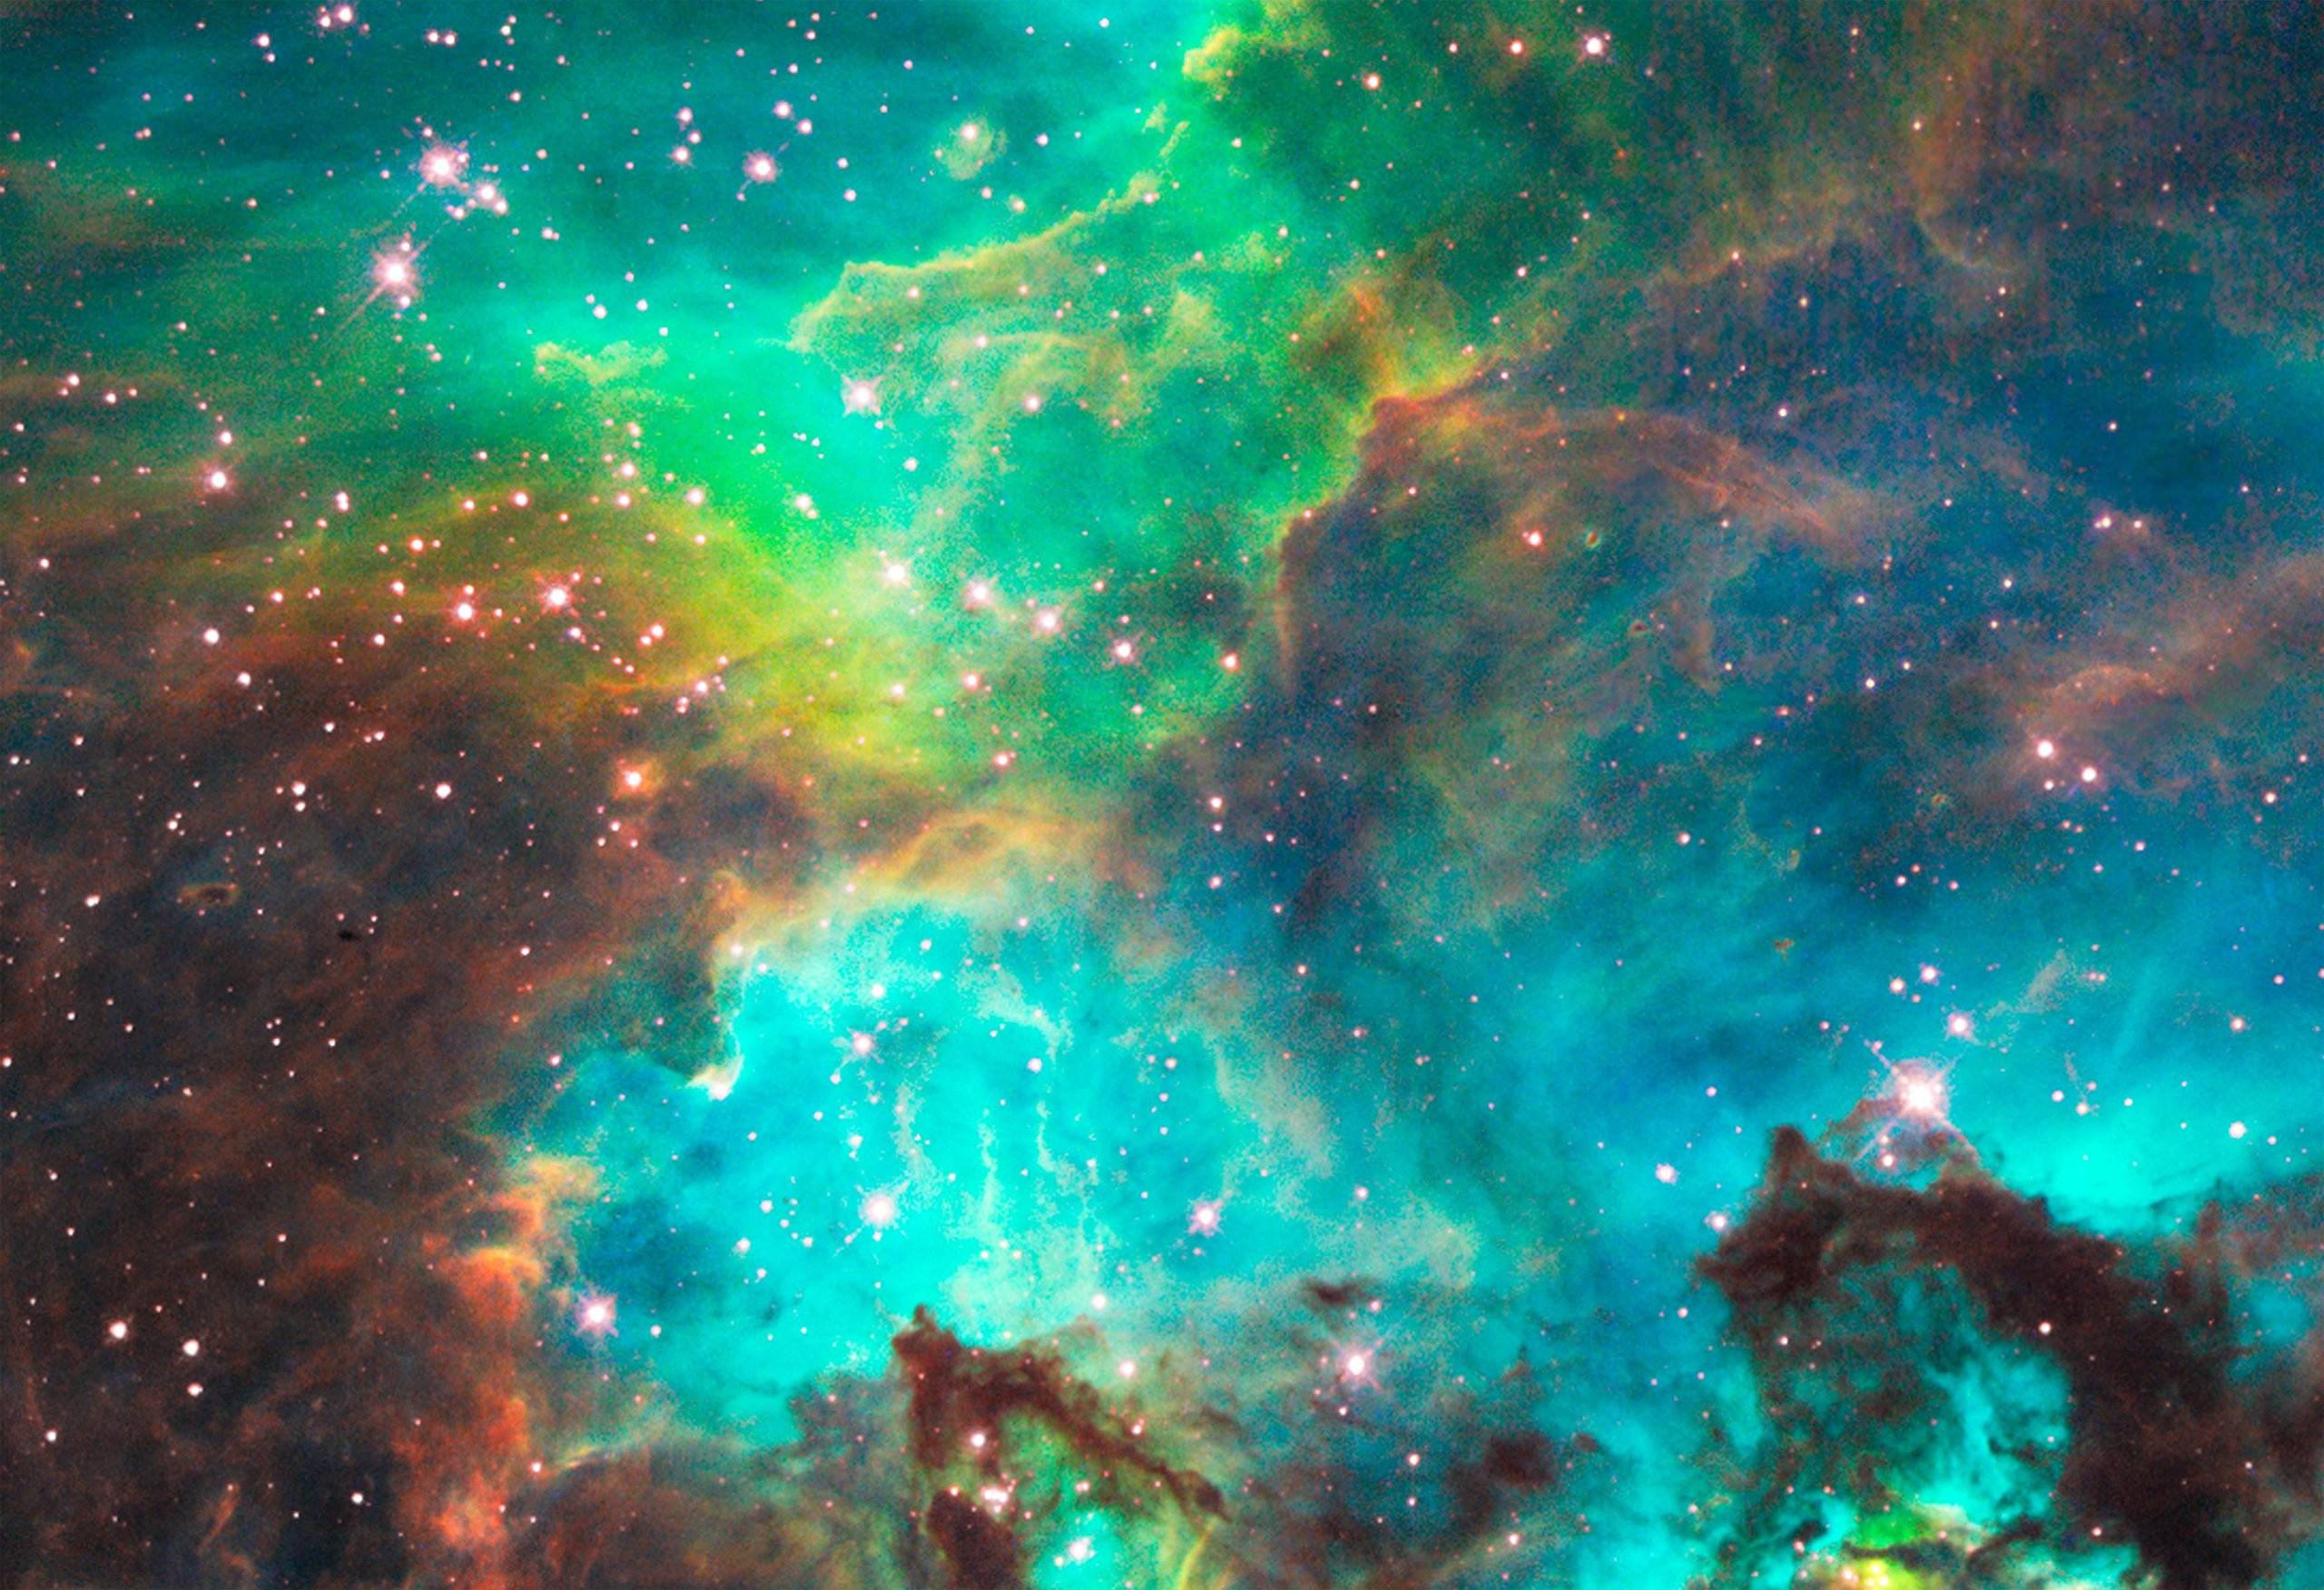 Star Cluster NGC 2074 in the Large Magellanic Cloud Hi Gloss Space Poster Fine Art Print